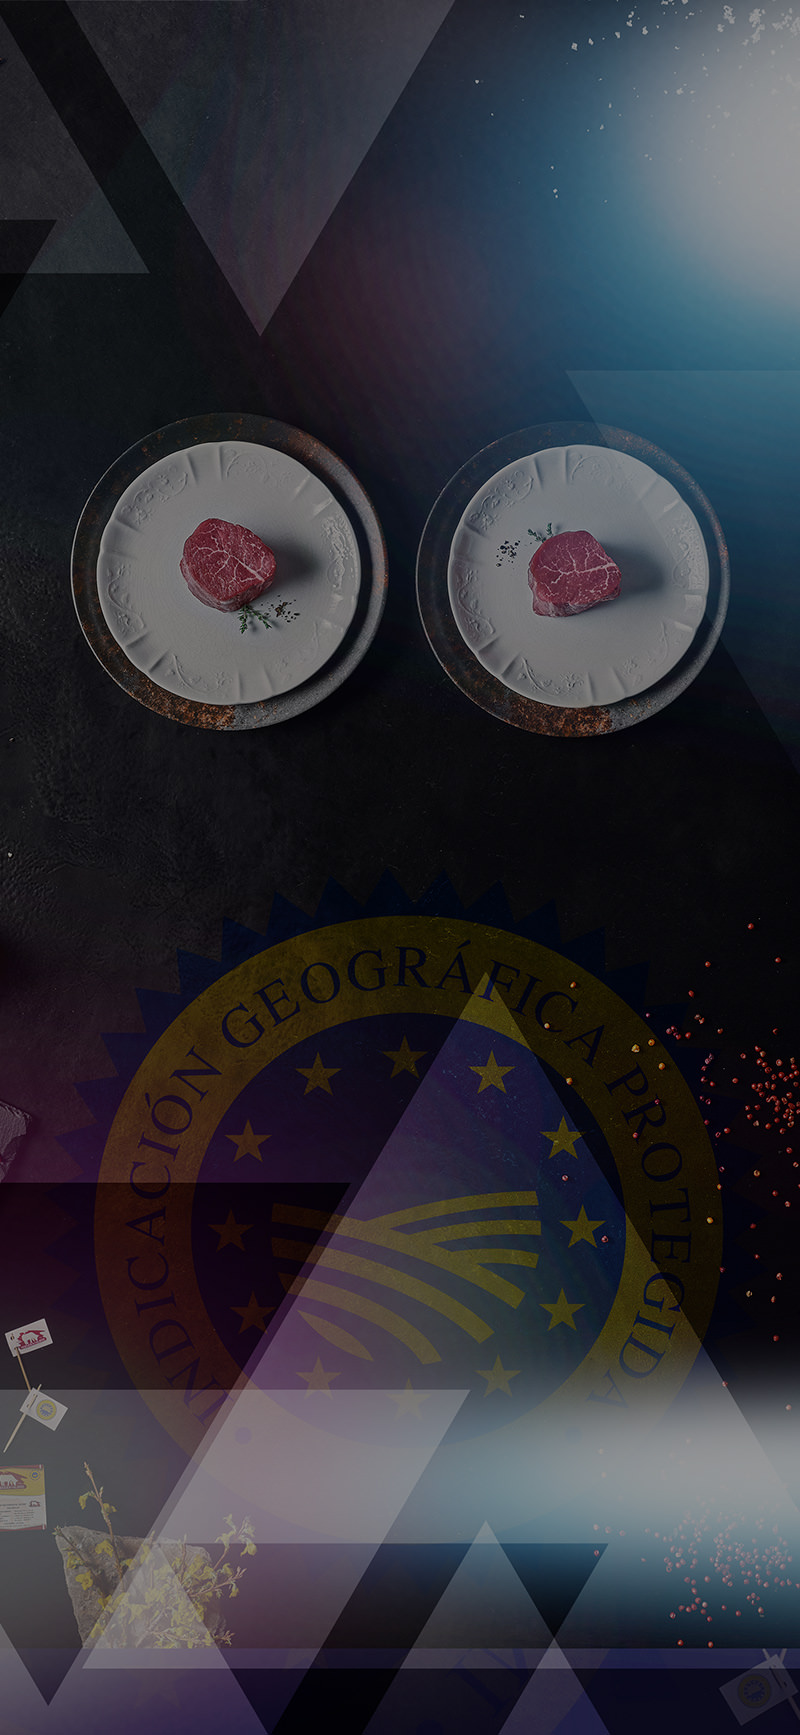 Banner Open your Eyes - PGI Ternera de Aliste